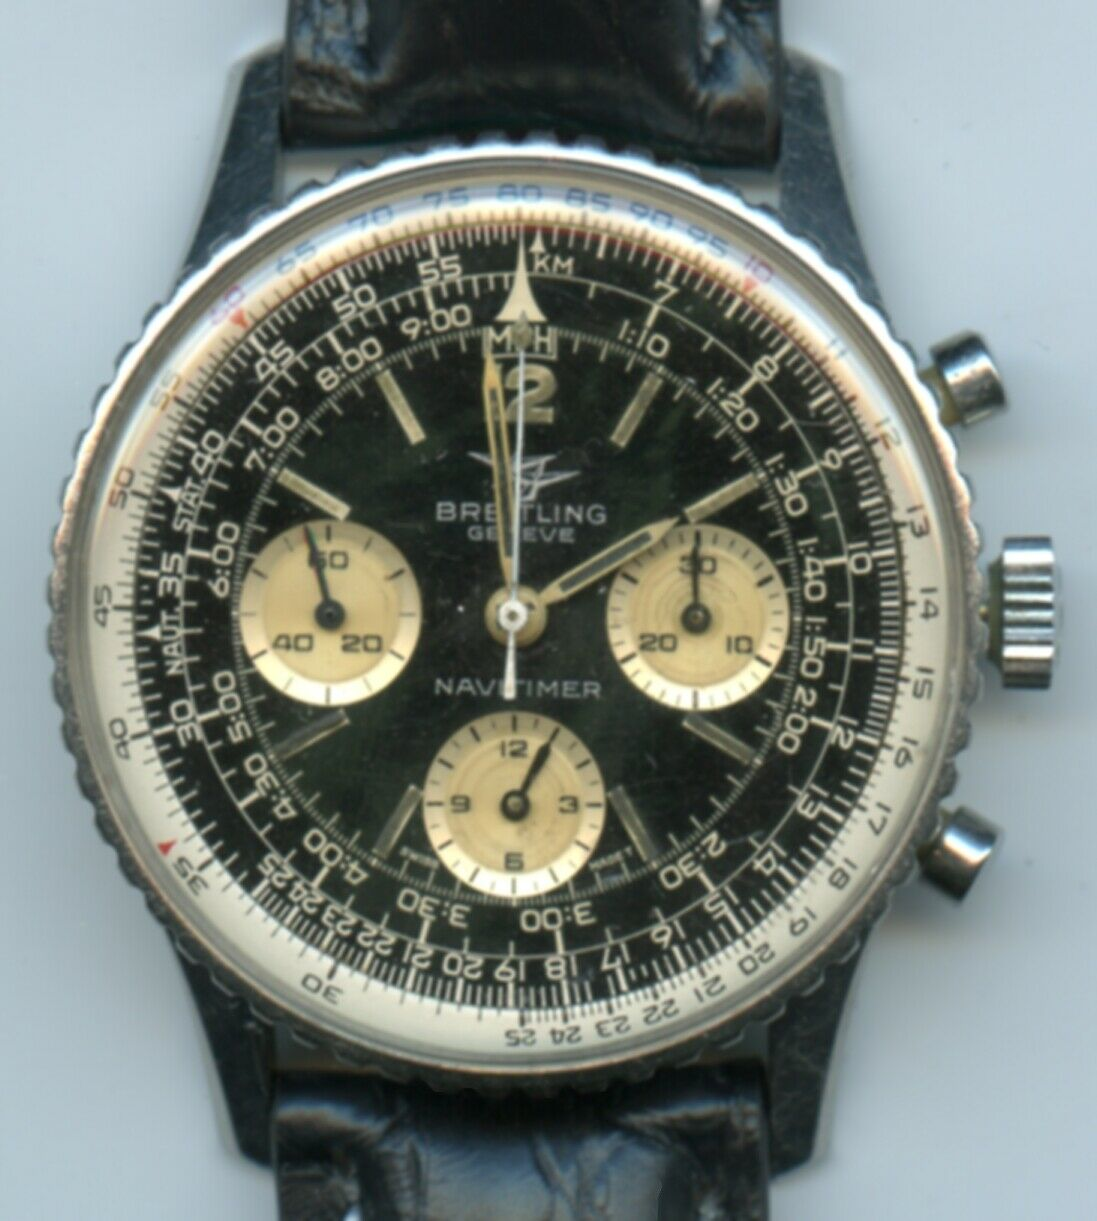 Vintage Breitling 806 Navitimer Original COPA (Canada's AOPA) Papers.  Works! - watch picture 1